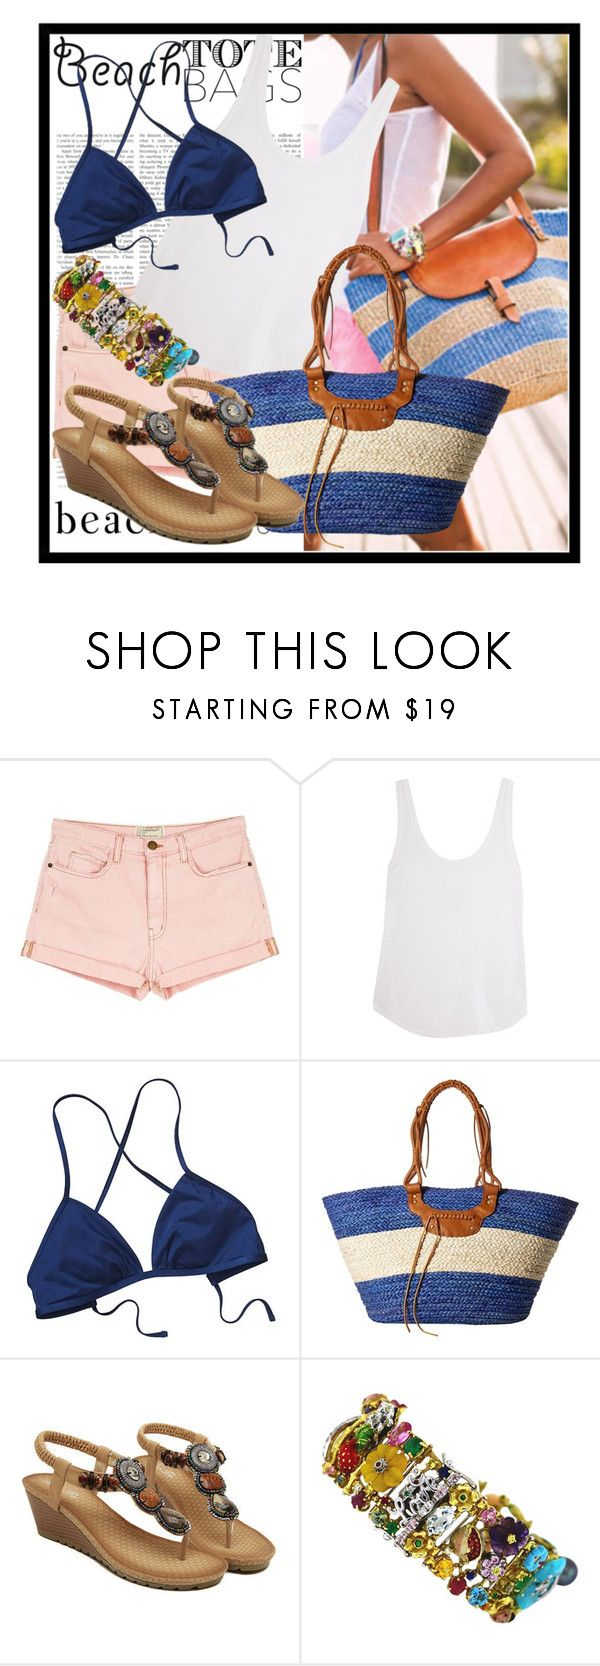 """""""Beach Tote Bag"""" by diana97-i ❤ liked on Polyvore featuring Current/Elliott, Frame Denim, Patagonia, San Diego Hat Co. and beachtotes"""